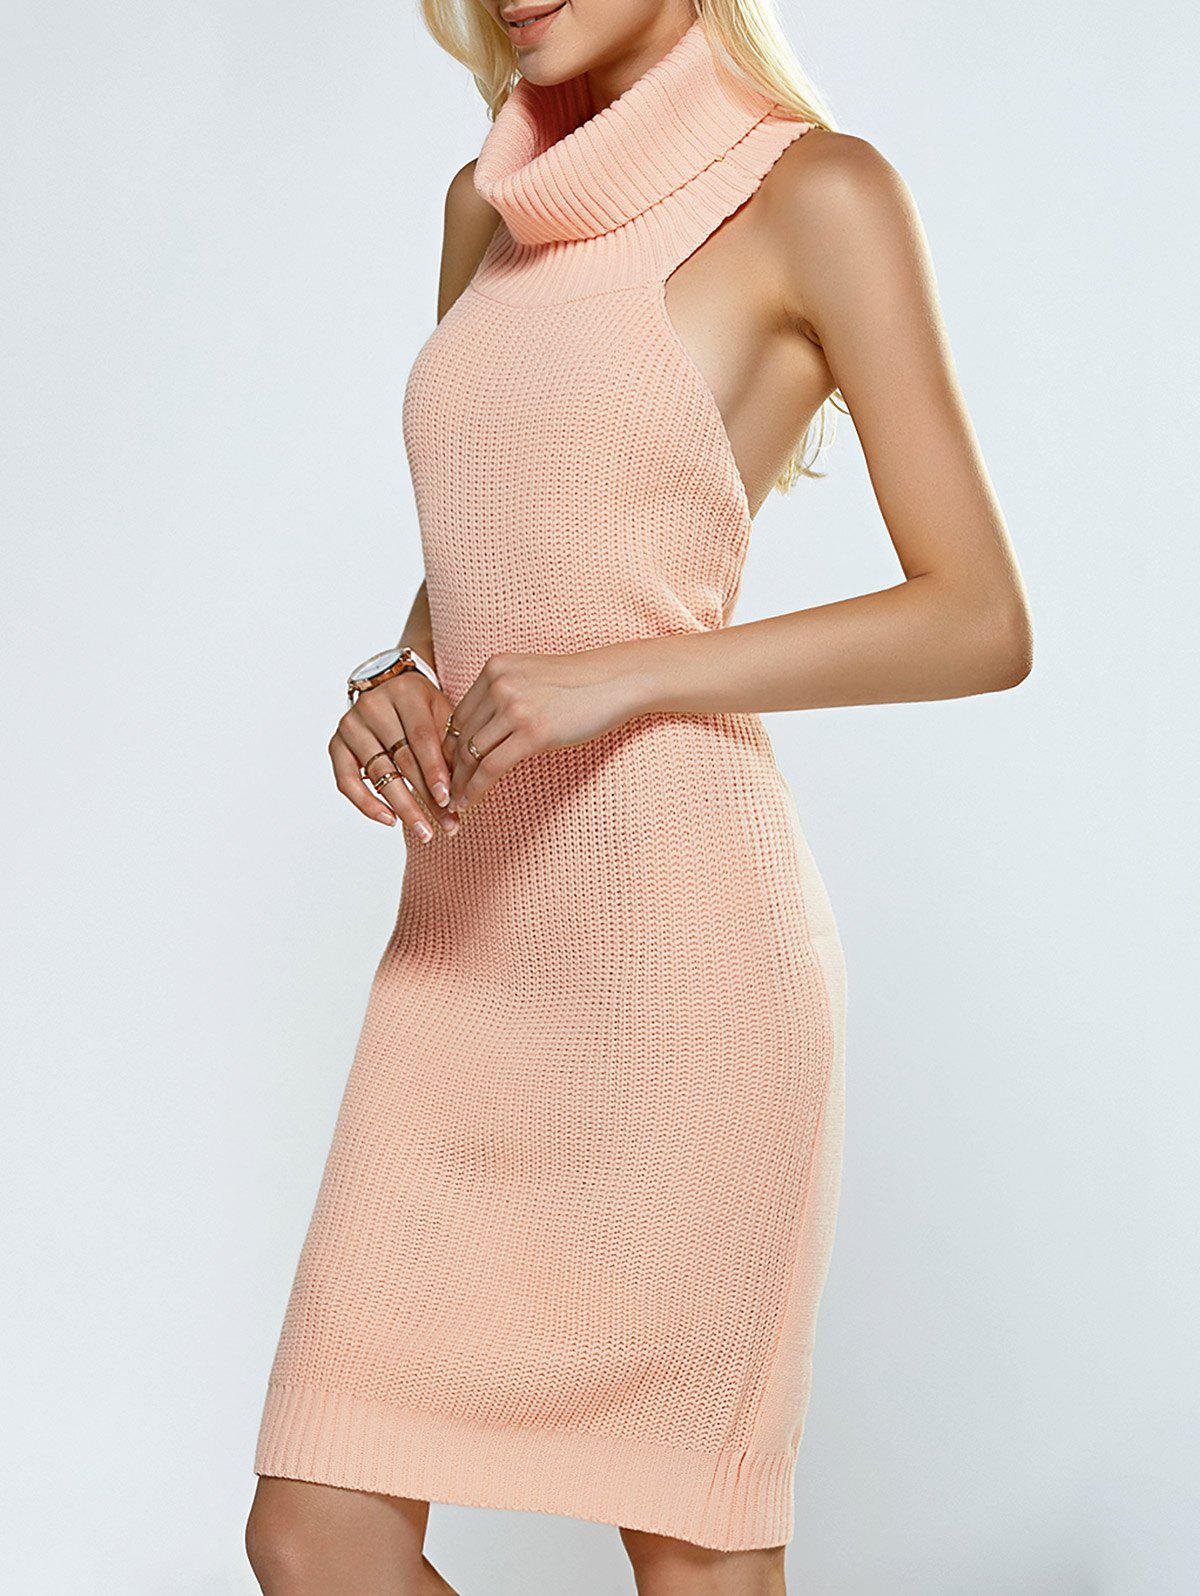 Discount Turtleneck Backless Ribbed Sleeveless Sweater Dress